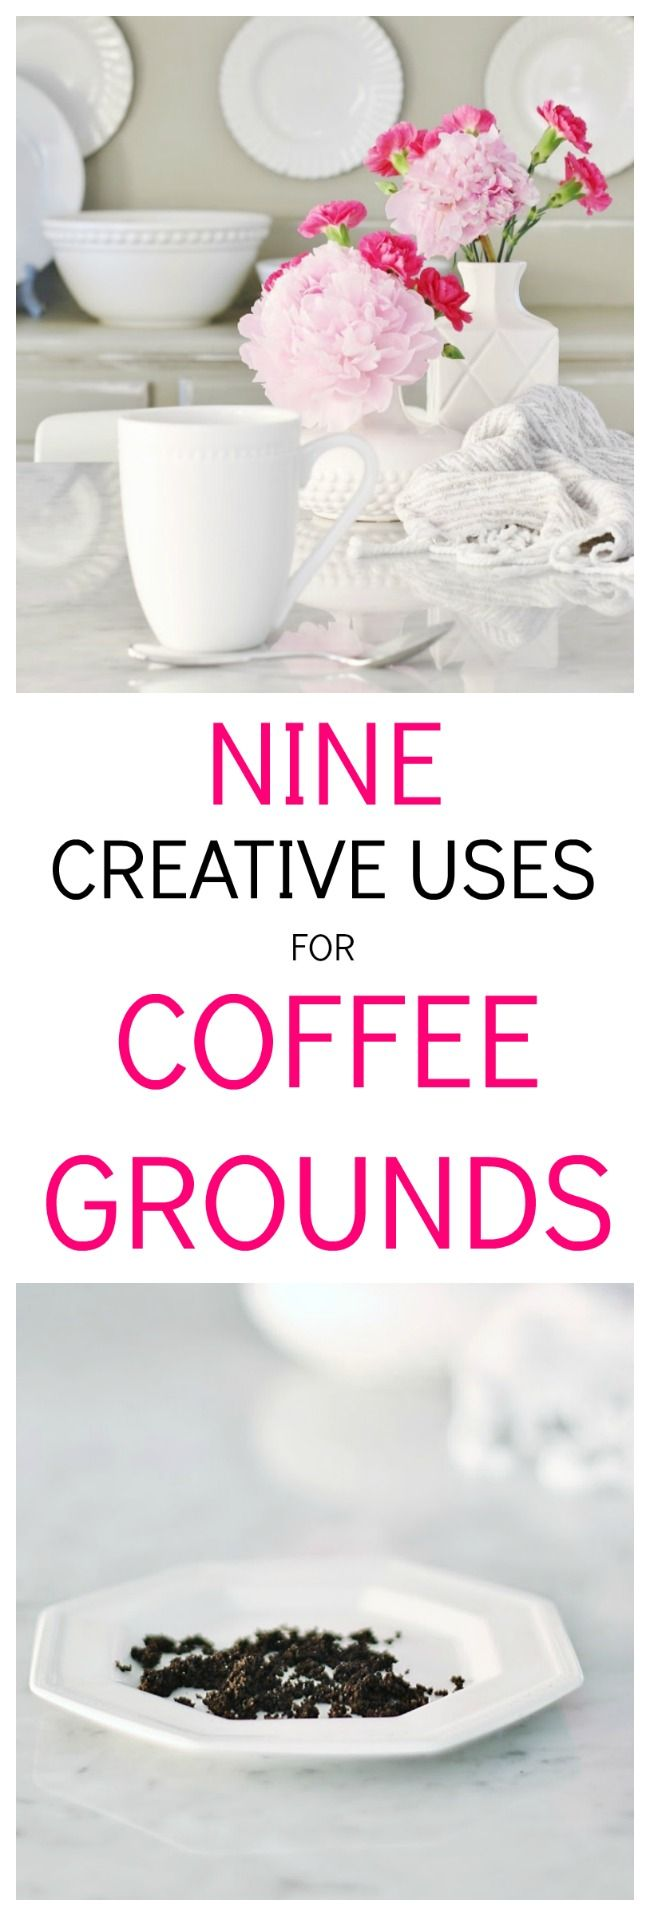 9 Creative Uses For Coffee Grounds Thistlewood Farm In 2020 Uses For Coffee Grounds Romantic Home Decor Coffee Grounds